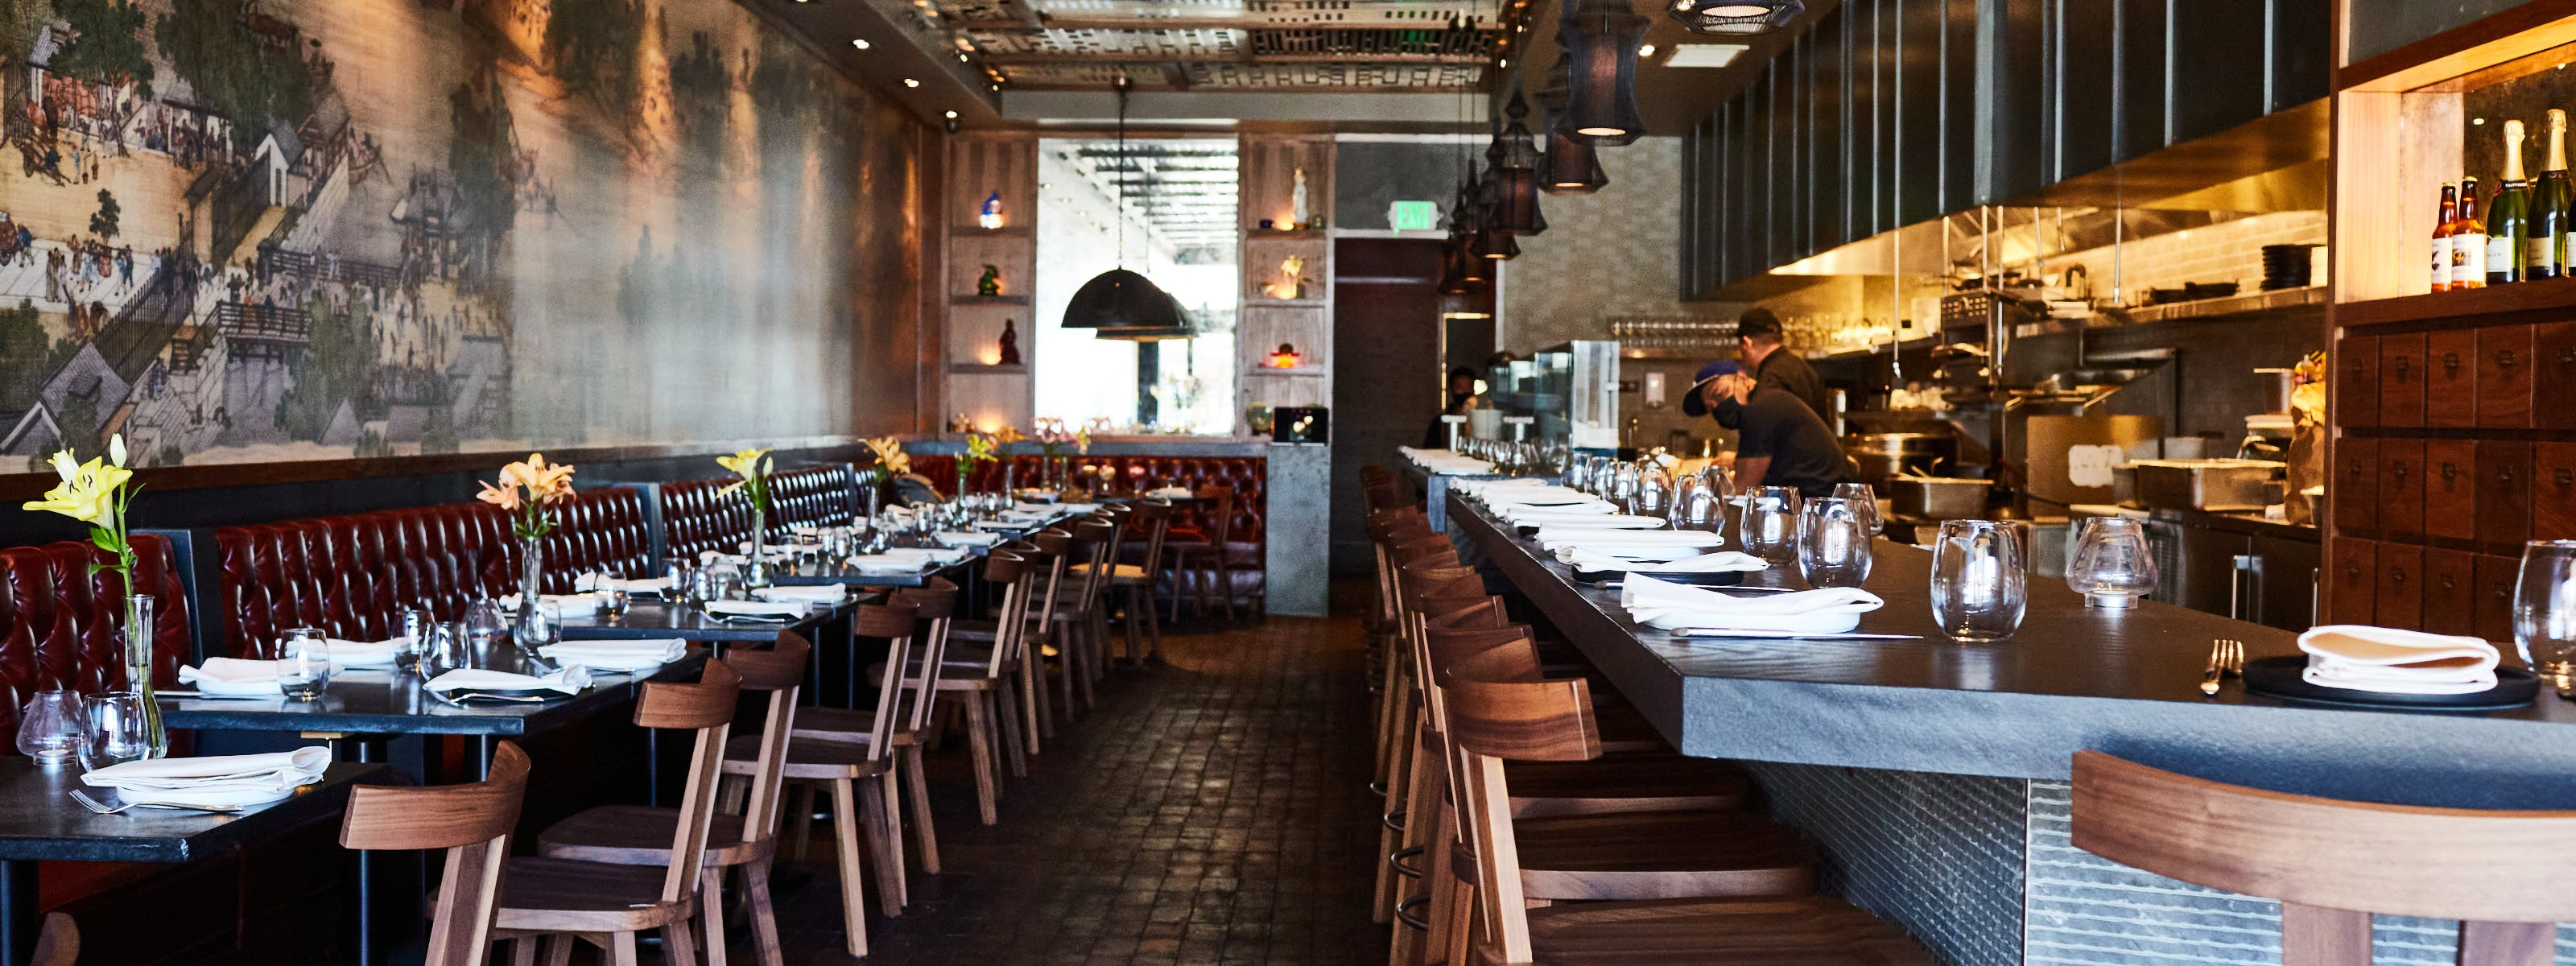 7 New Things To Do & Eat In San Francisco This Week - San Francisco - The Infatuation